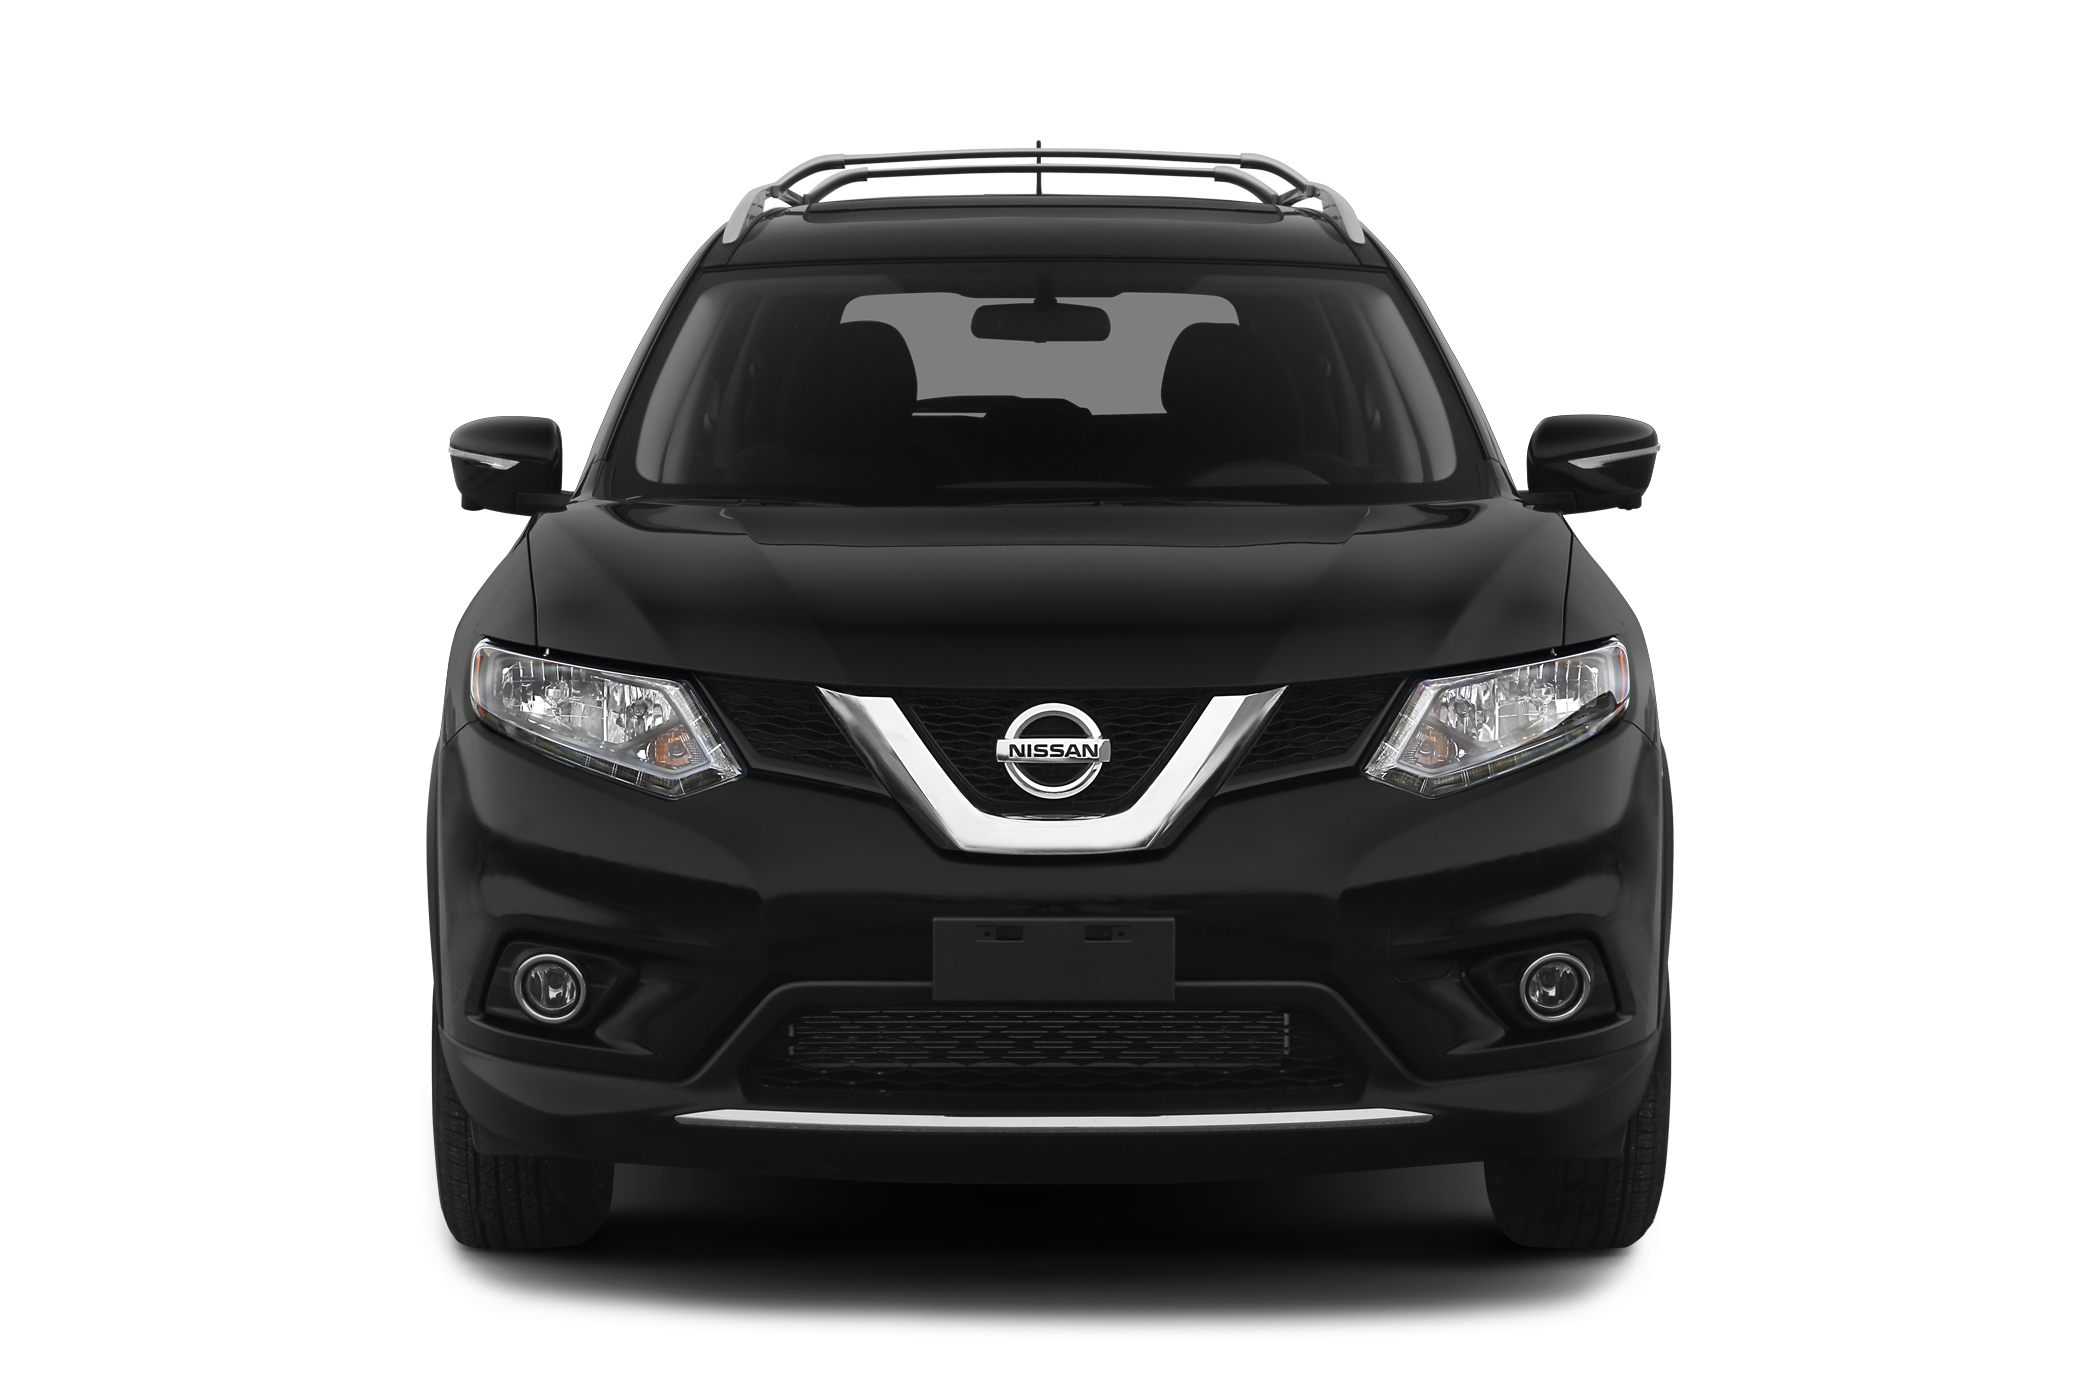 2015 nissan rogue invoice price 2015 nissan rogue price photos reviews amp features 2100 X 1386